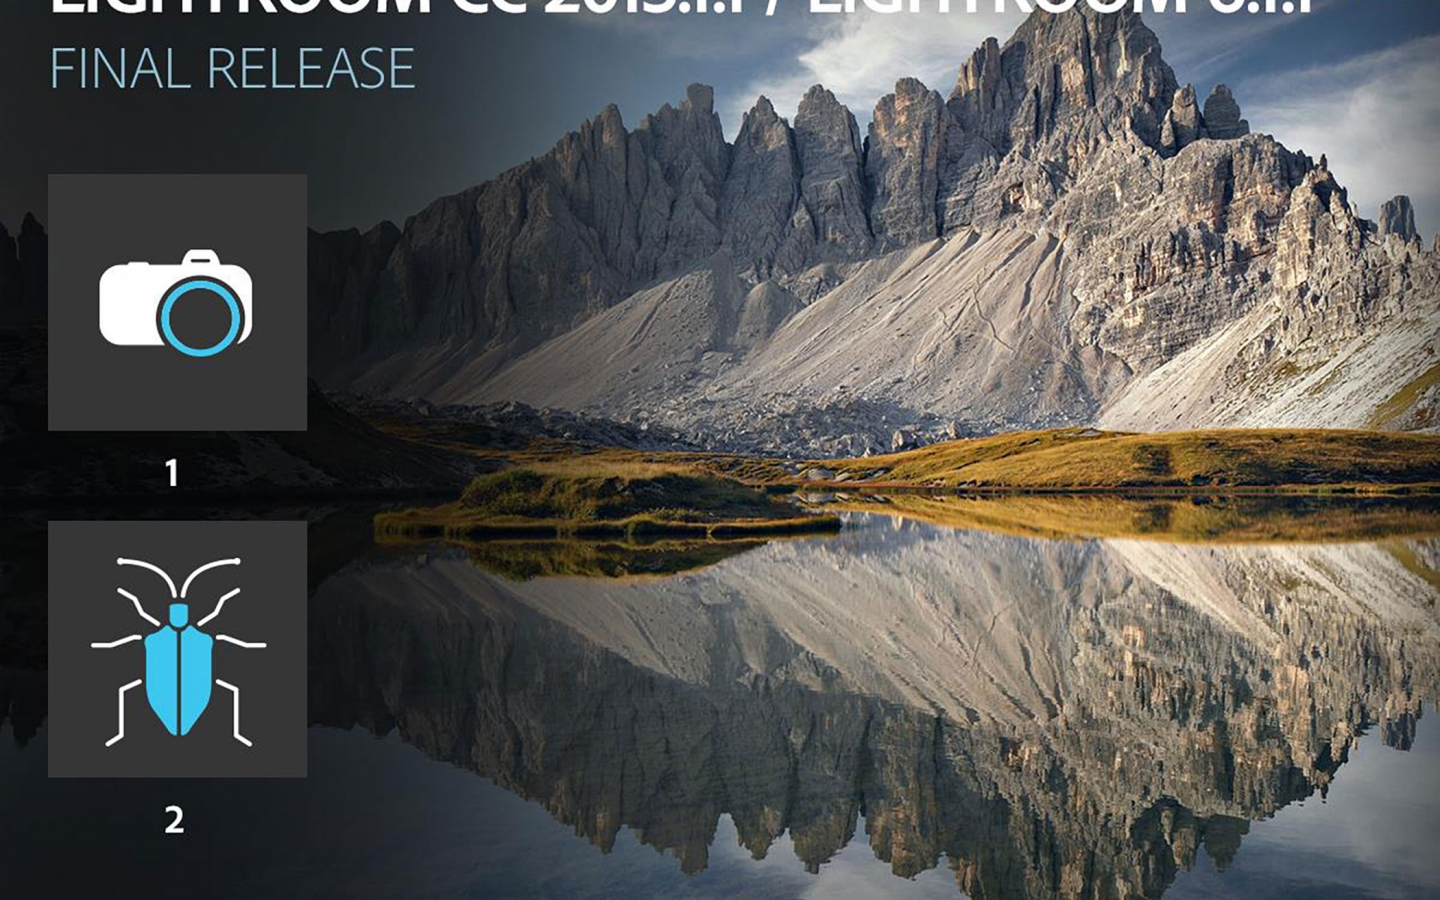 Adobe Lightroom CC 2015 1 1 and 6 1 1 1440x900 Lightroom CC 2015.1.1 and 6.1.1 Update